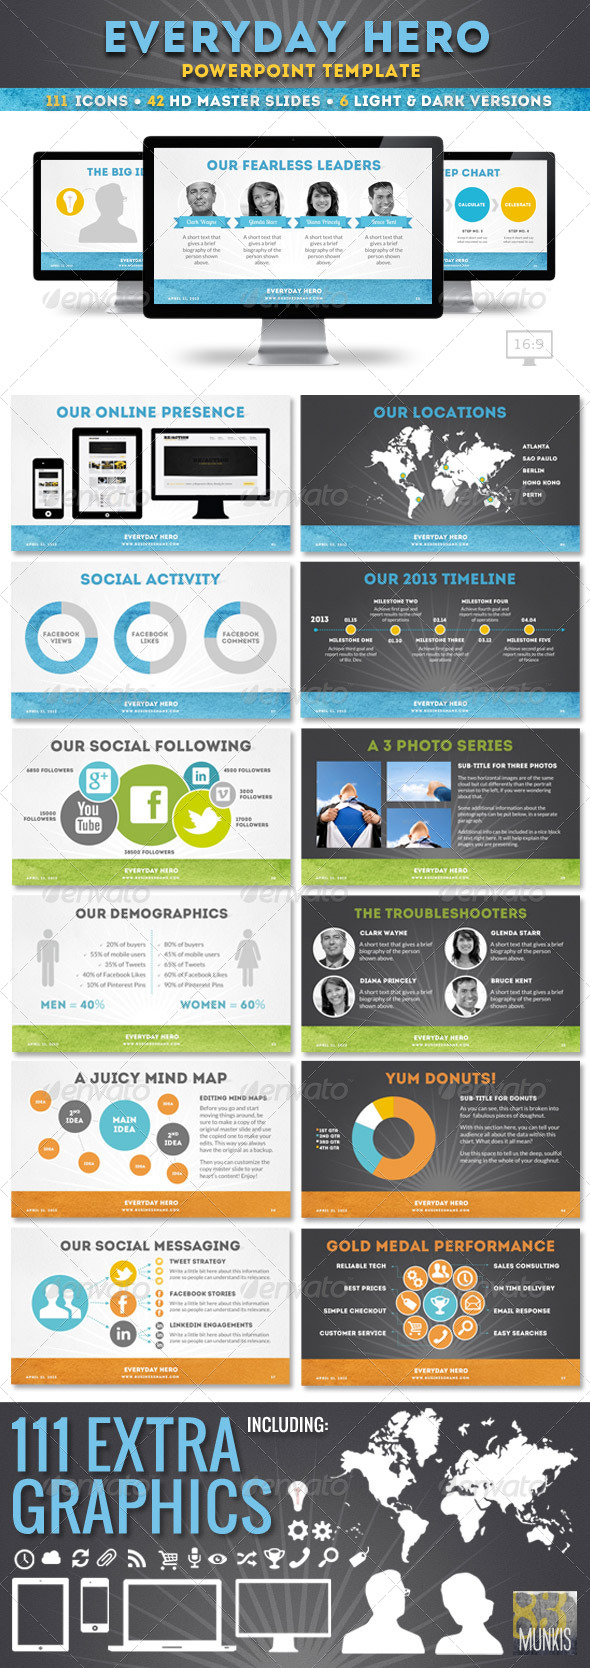 GraphicRiver Everyday Hero Powerpoint Template 4578632